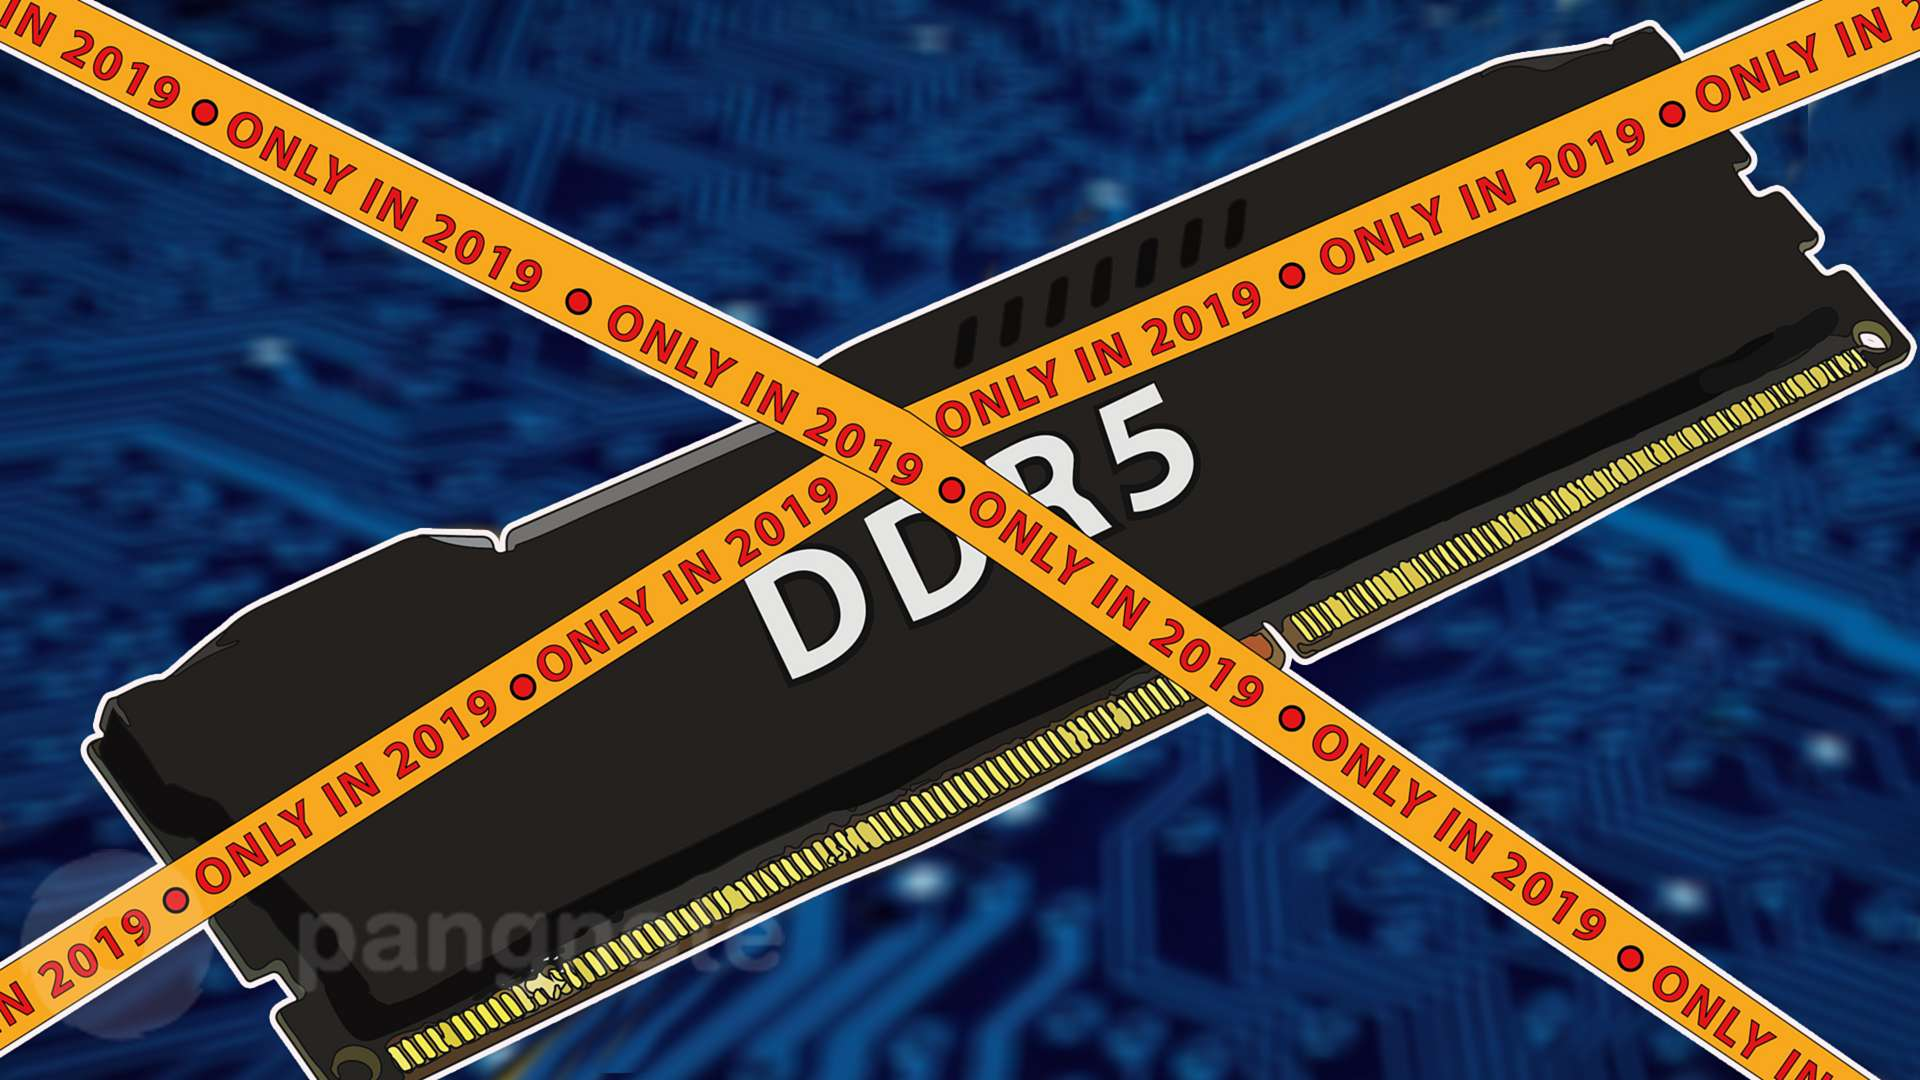 The DDR5 standard is likely to be only in 2019